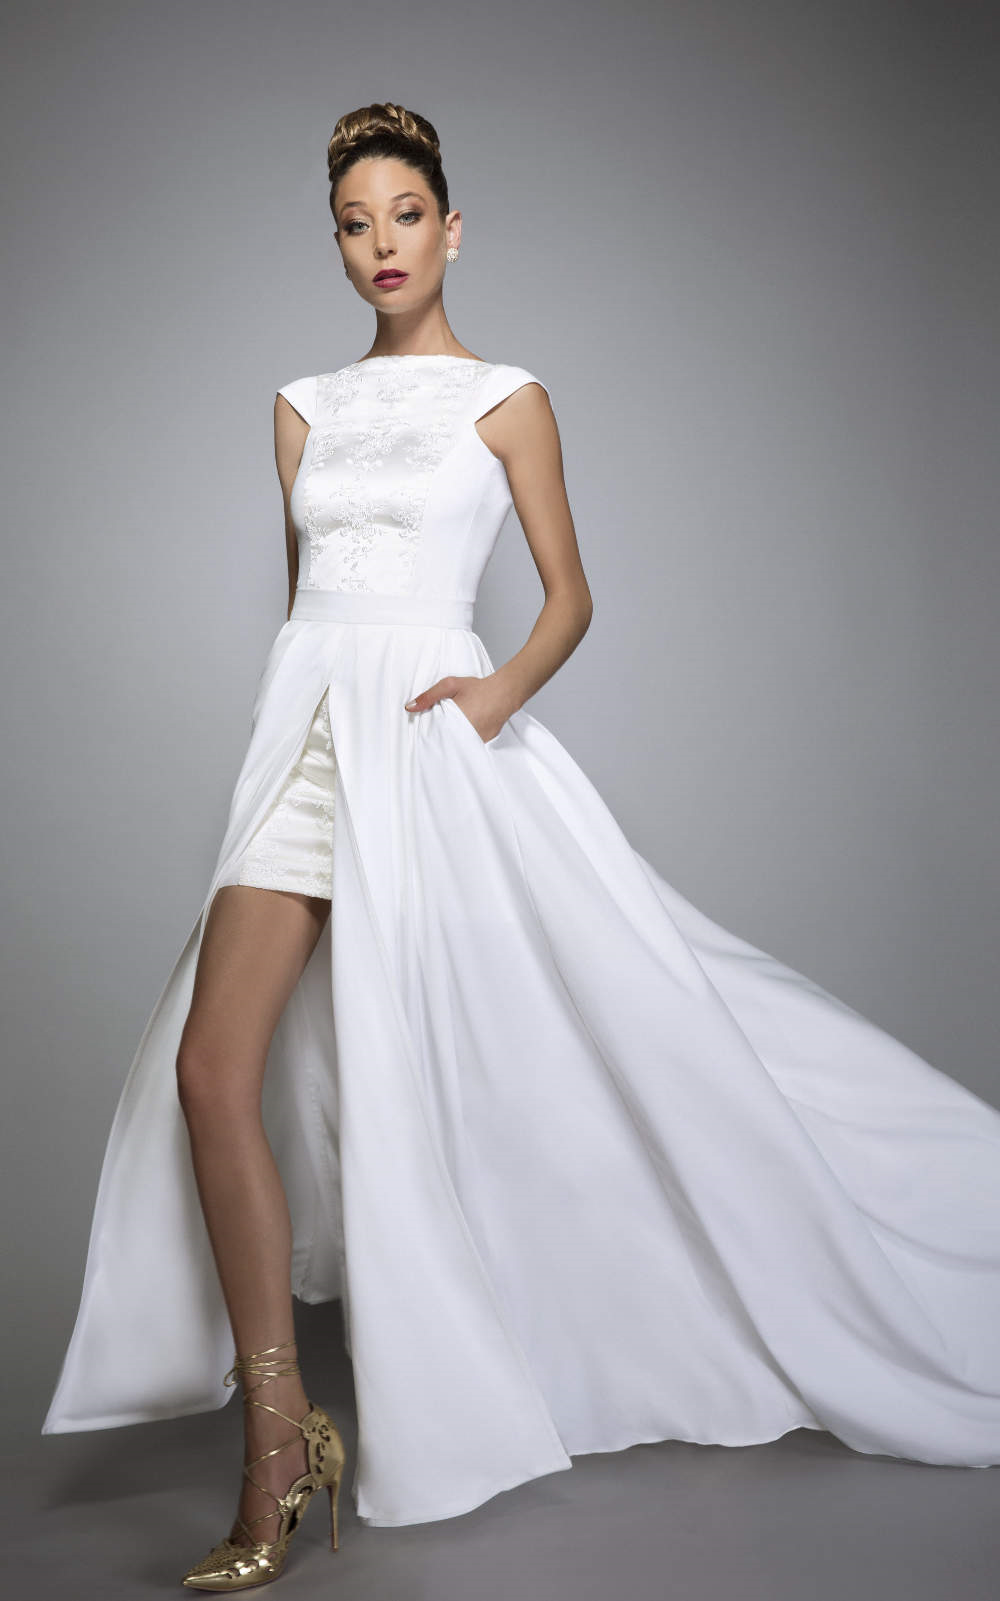 Veruschka fabulous convertible wedding dress with pockets and veruschka convertible wedding dress with pockets and train bare back bridal separates 2 in 1 urban chic non traditional ombrellifo Image collections